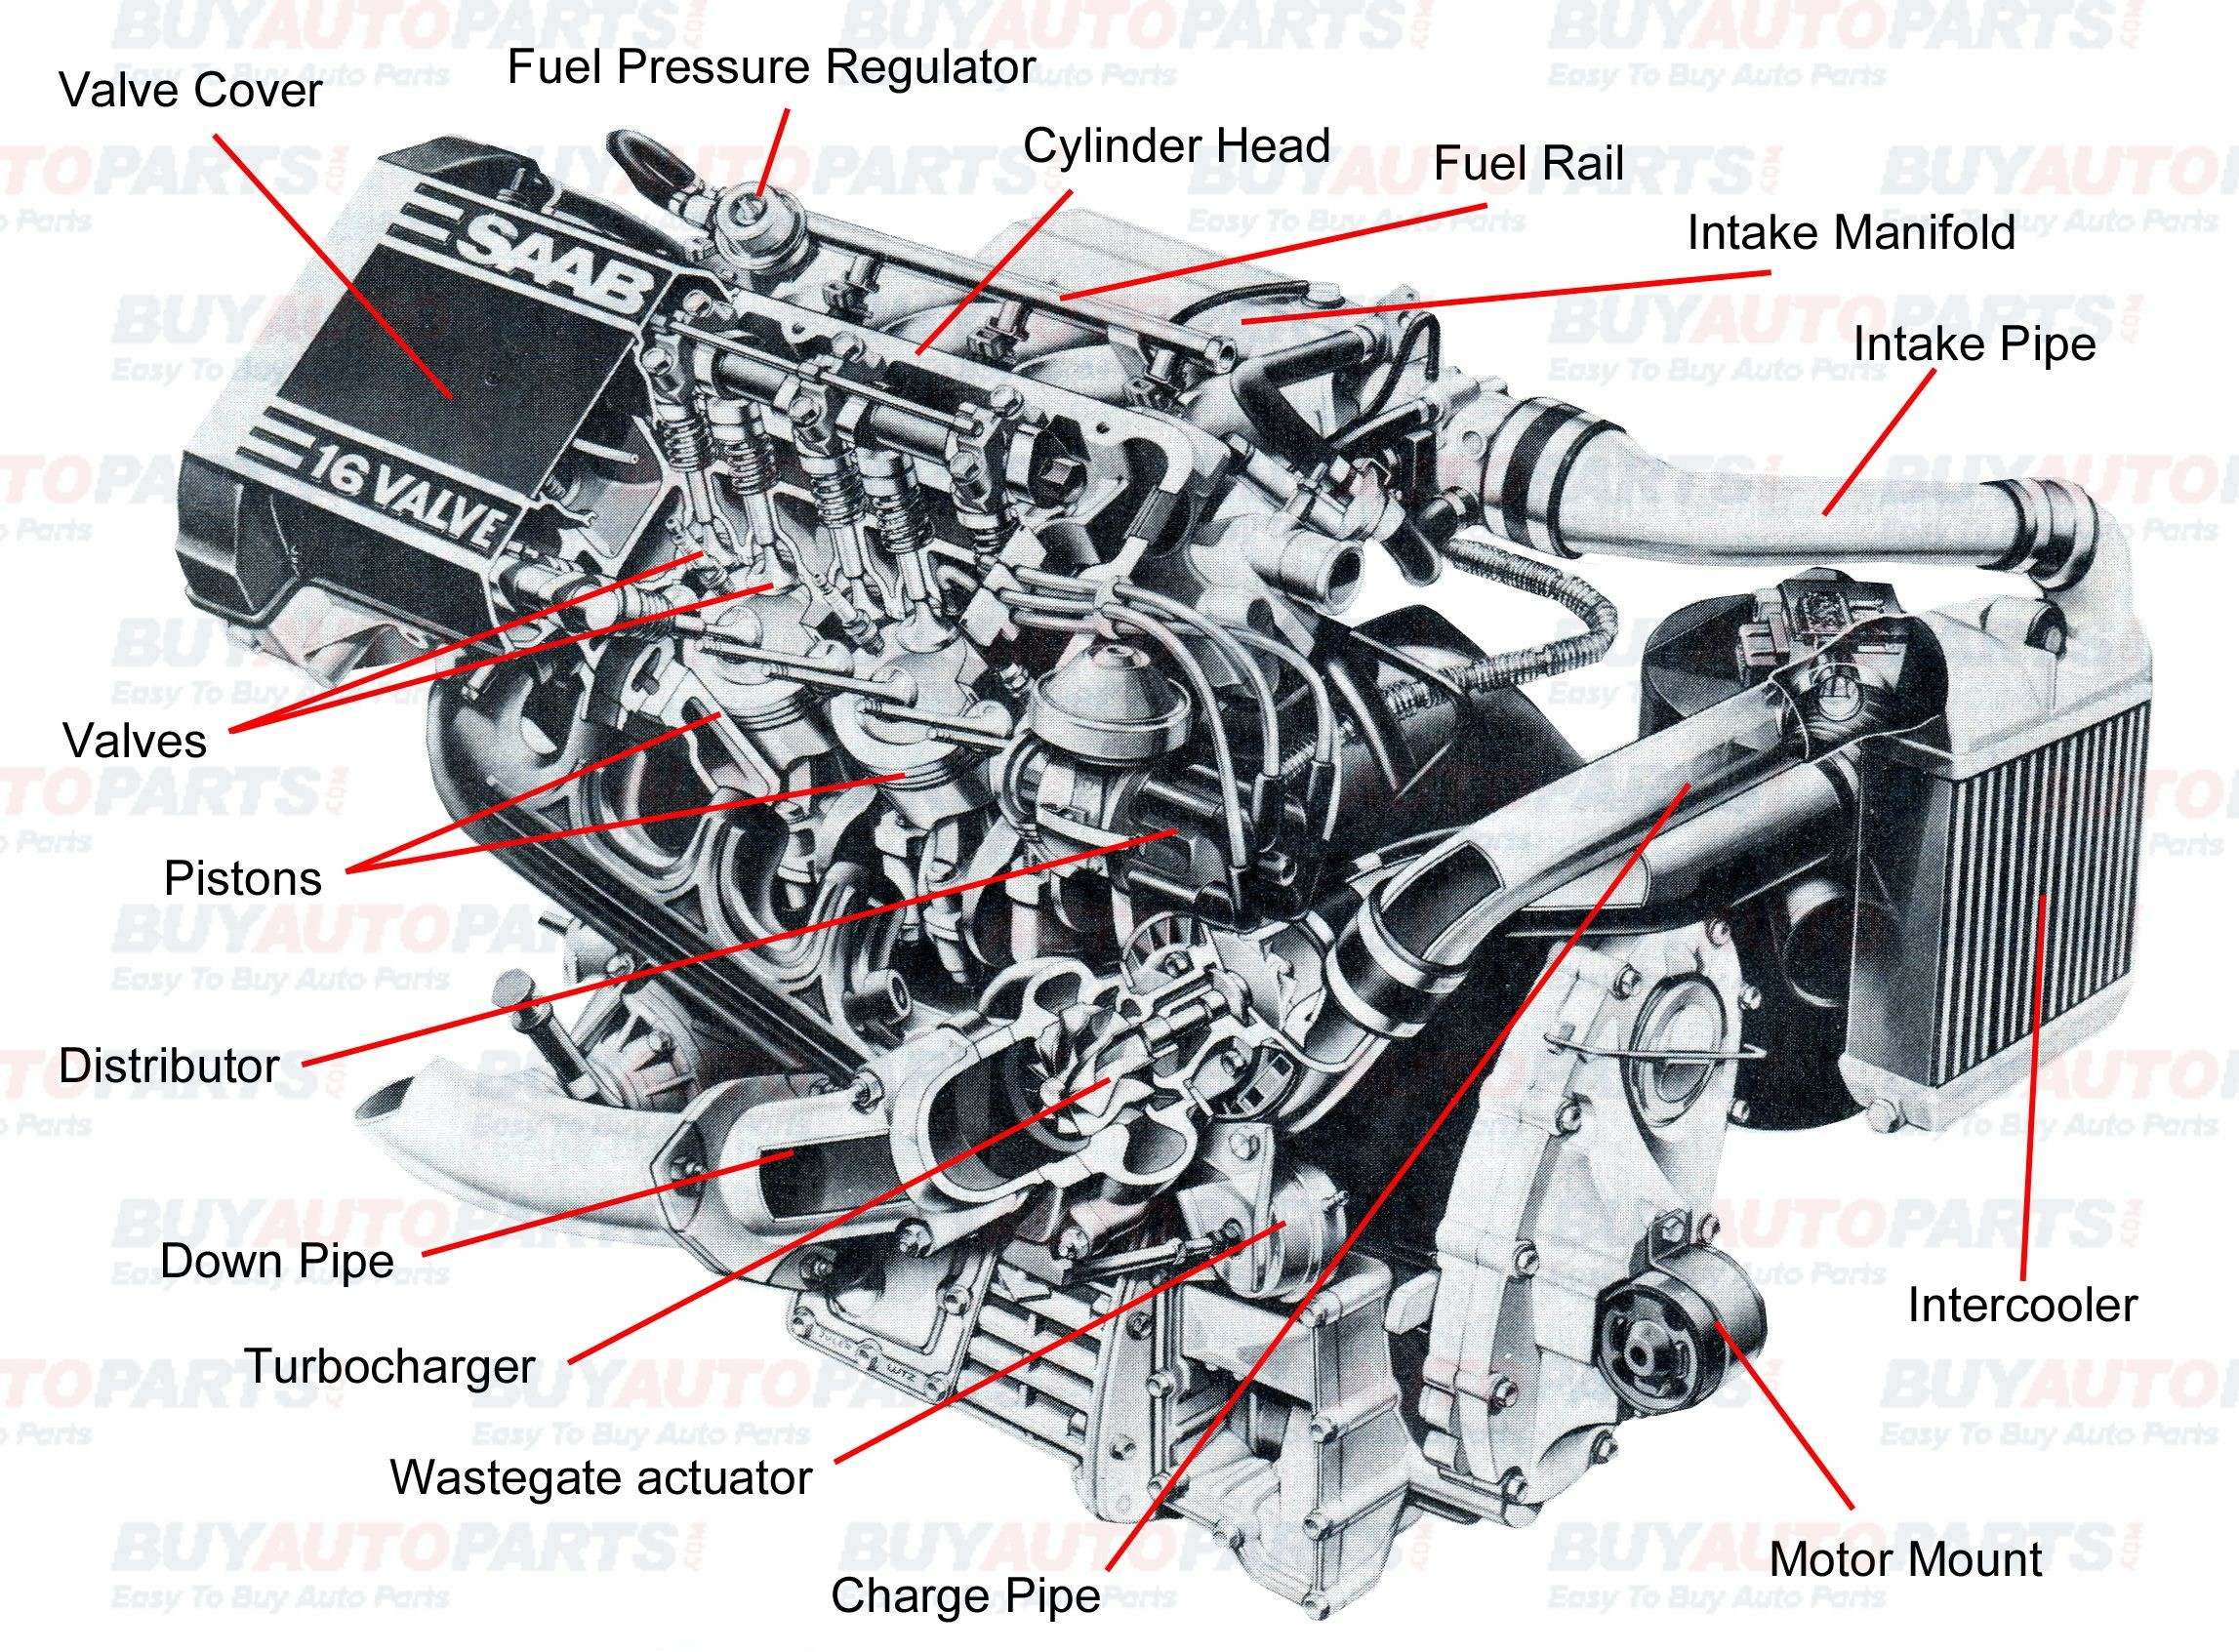 Engine Part Diagram All Internal Bustion Engines Have the Same Basic Ponents the Of Engine Part Diagram